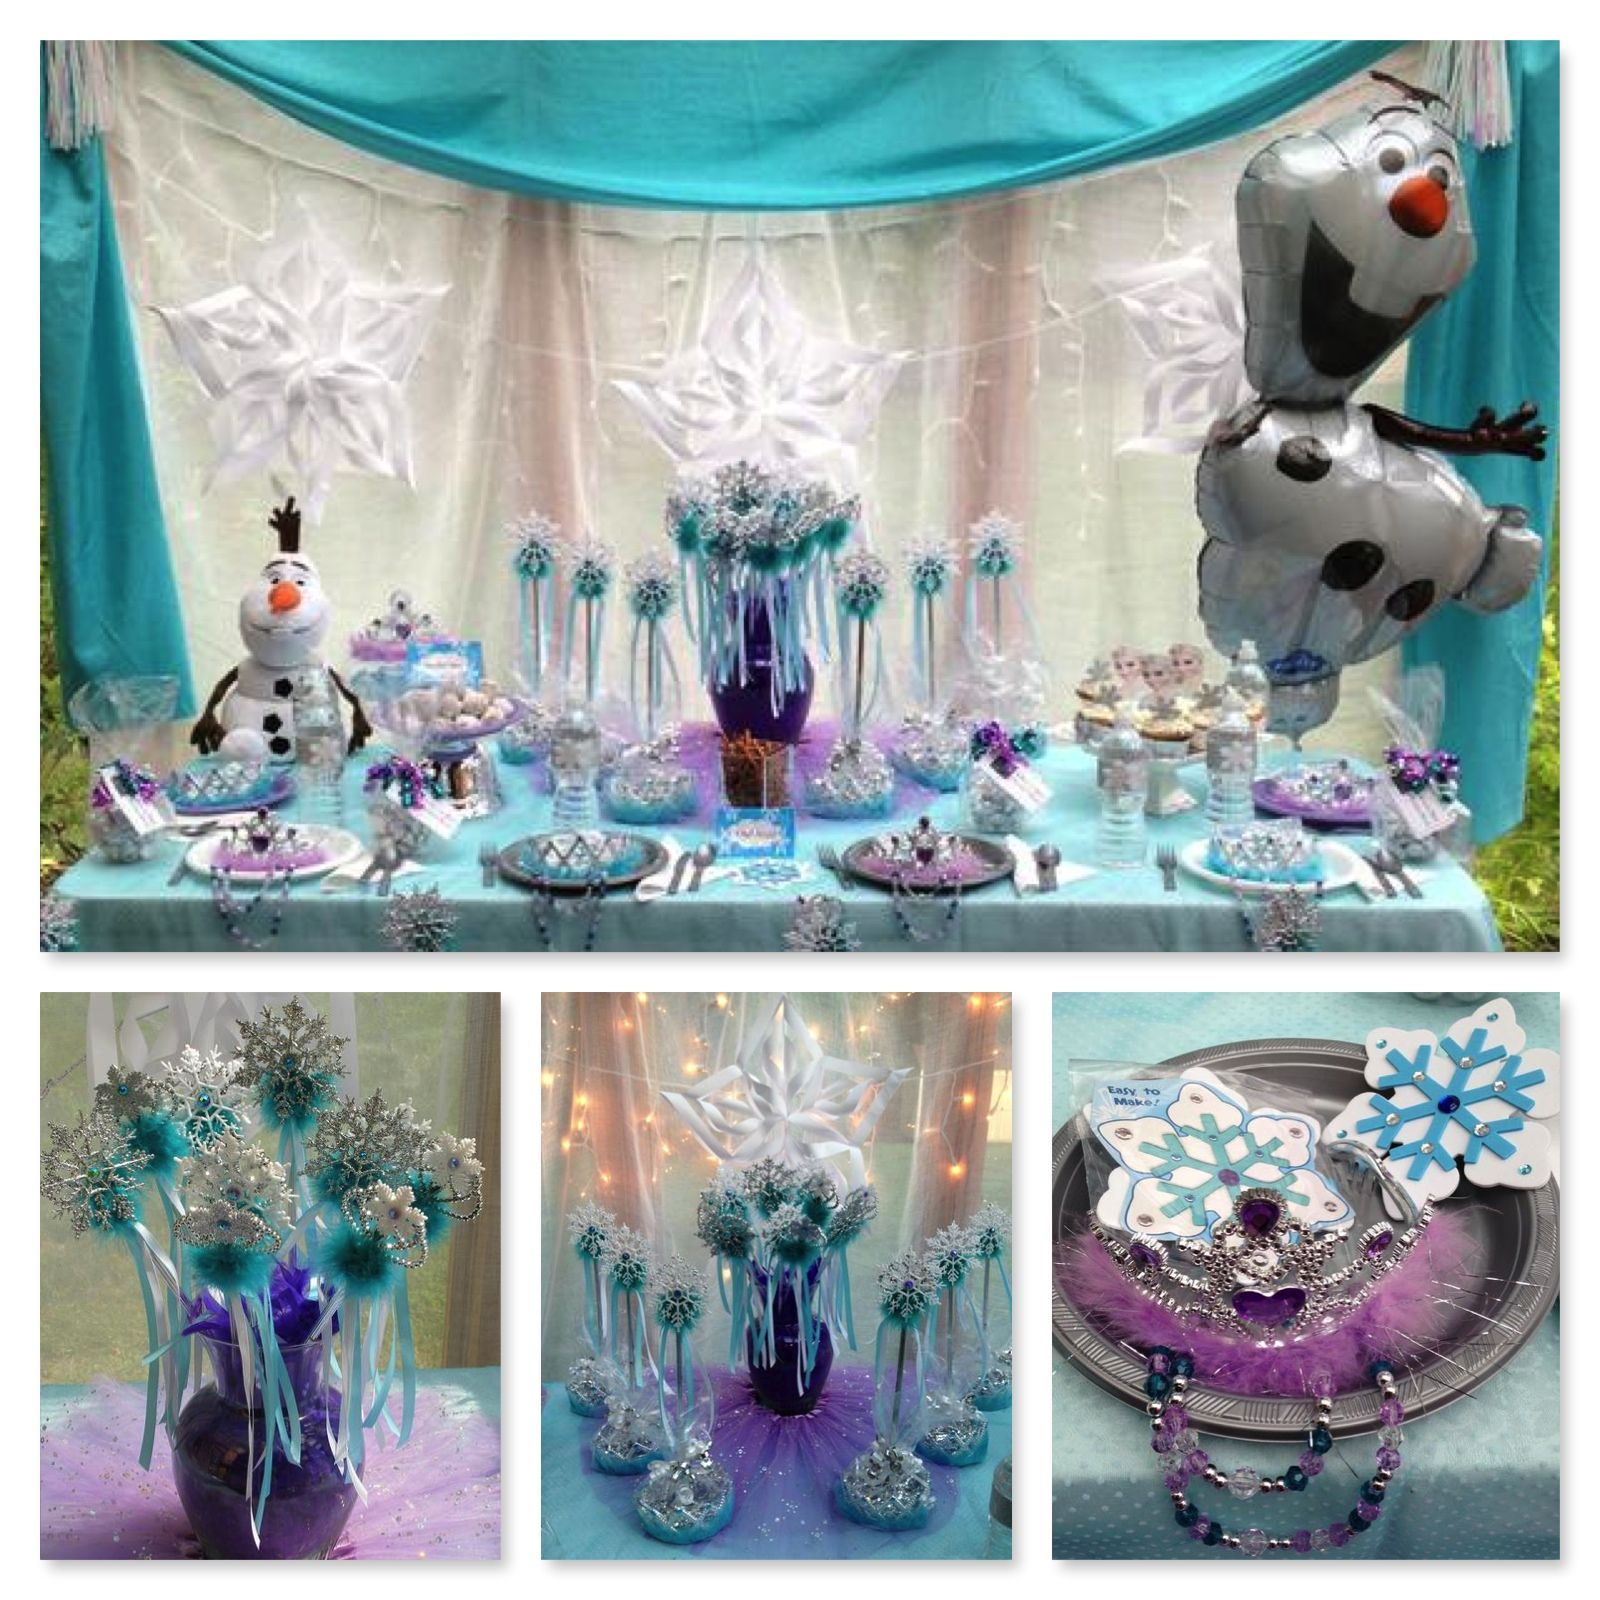 Princess Birthday Party Ideas Decorations For A Frozen Princess